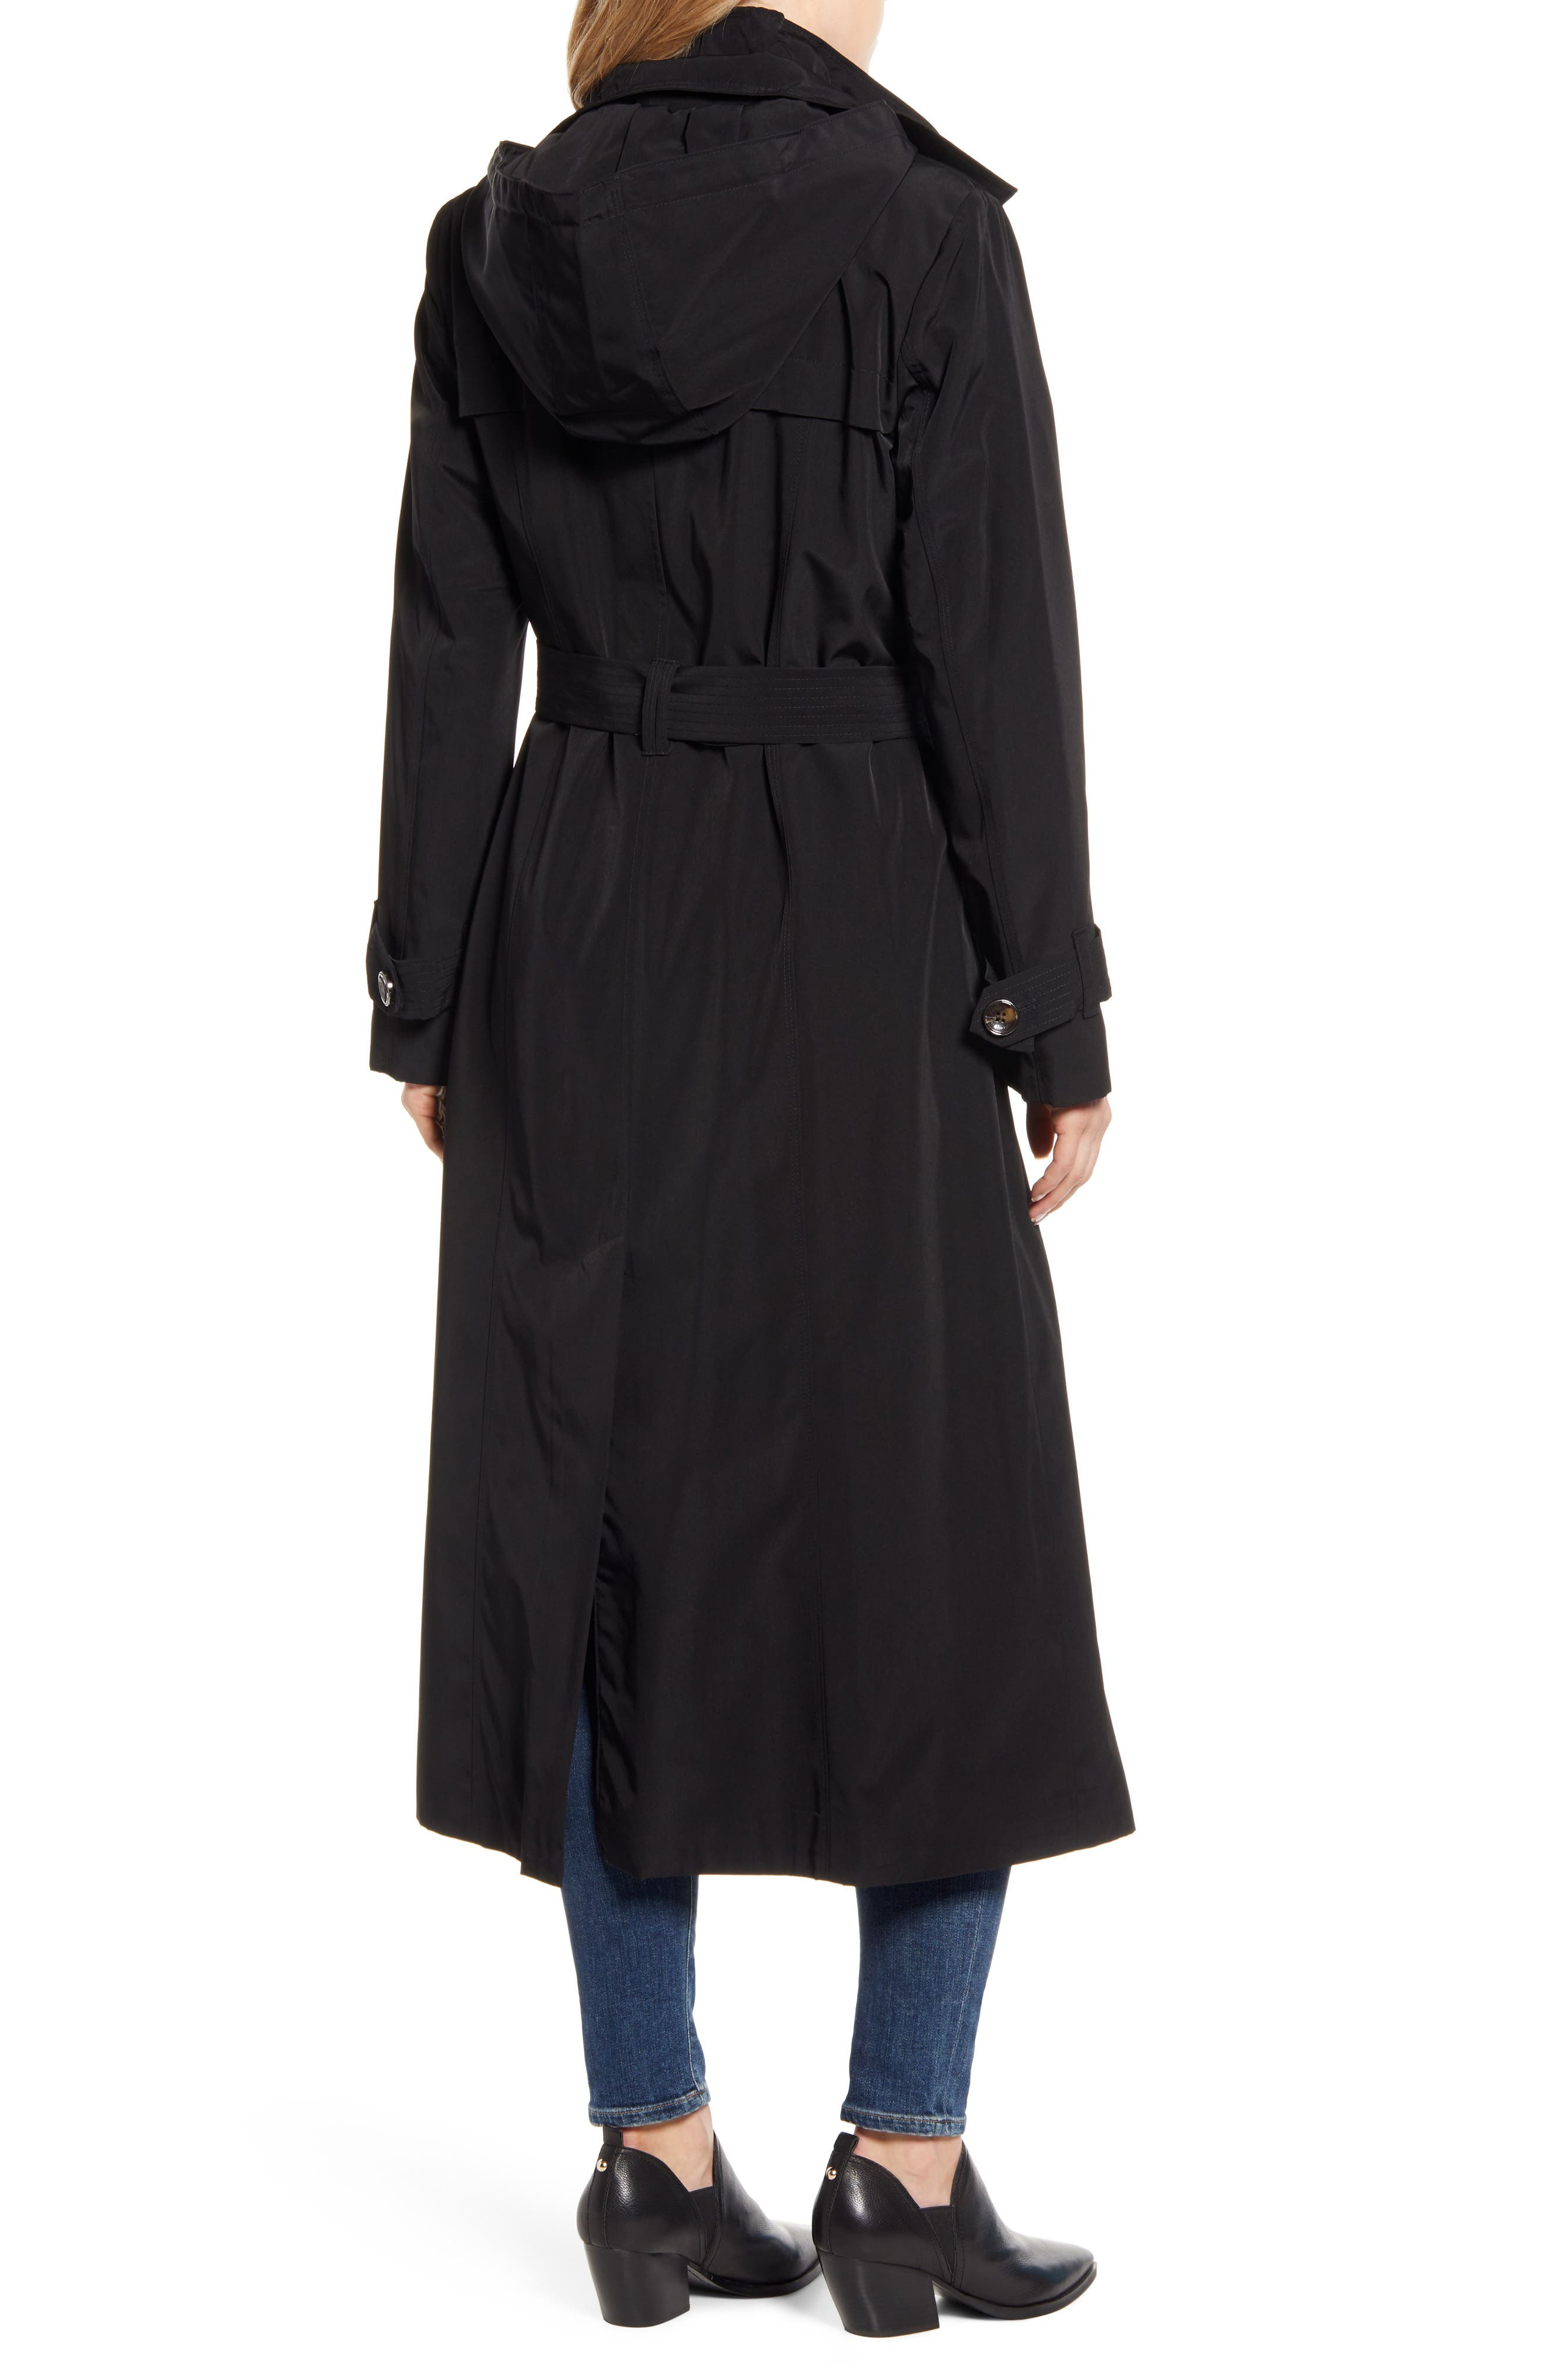 exclusive shoes usa cheap sale save up to 80% Women's London Fog Clothing | Nordstrom